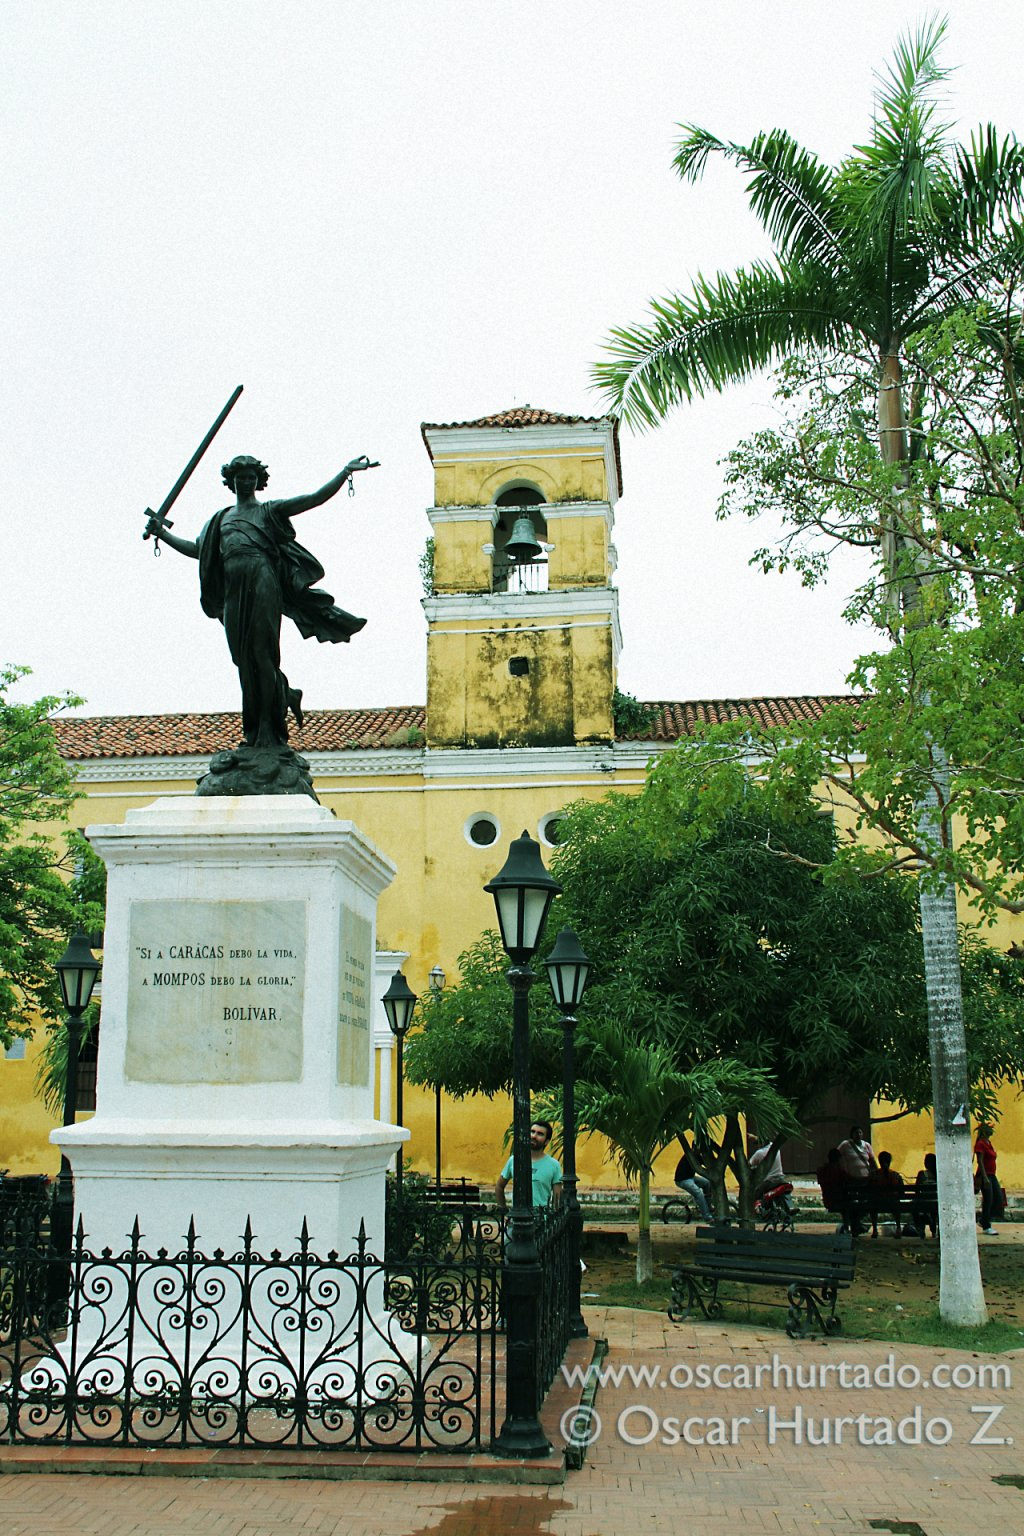 The iconic statue of Simón Bolivar situated in La Libertad Park in front of the San Carlos convent